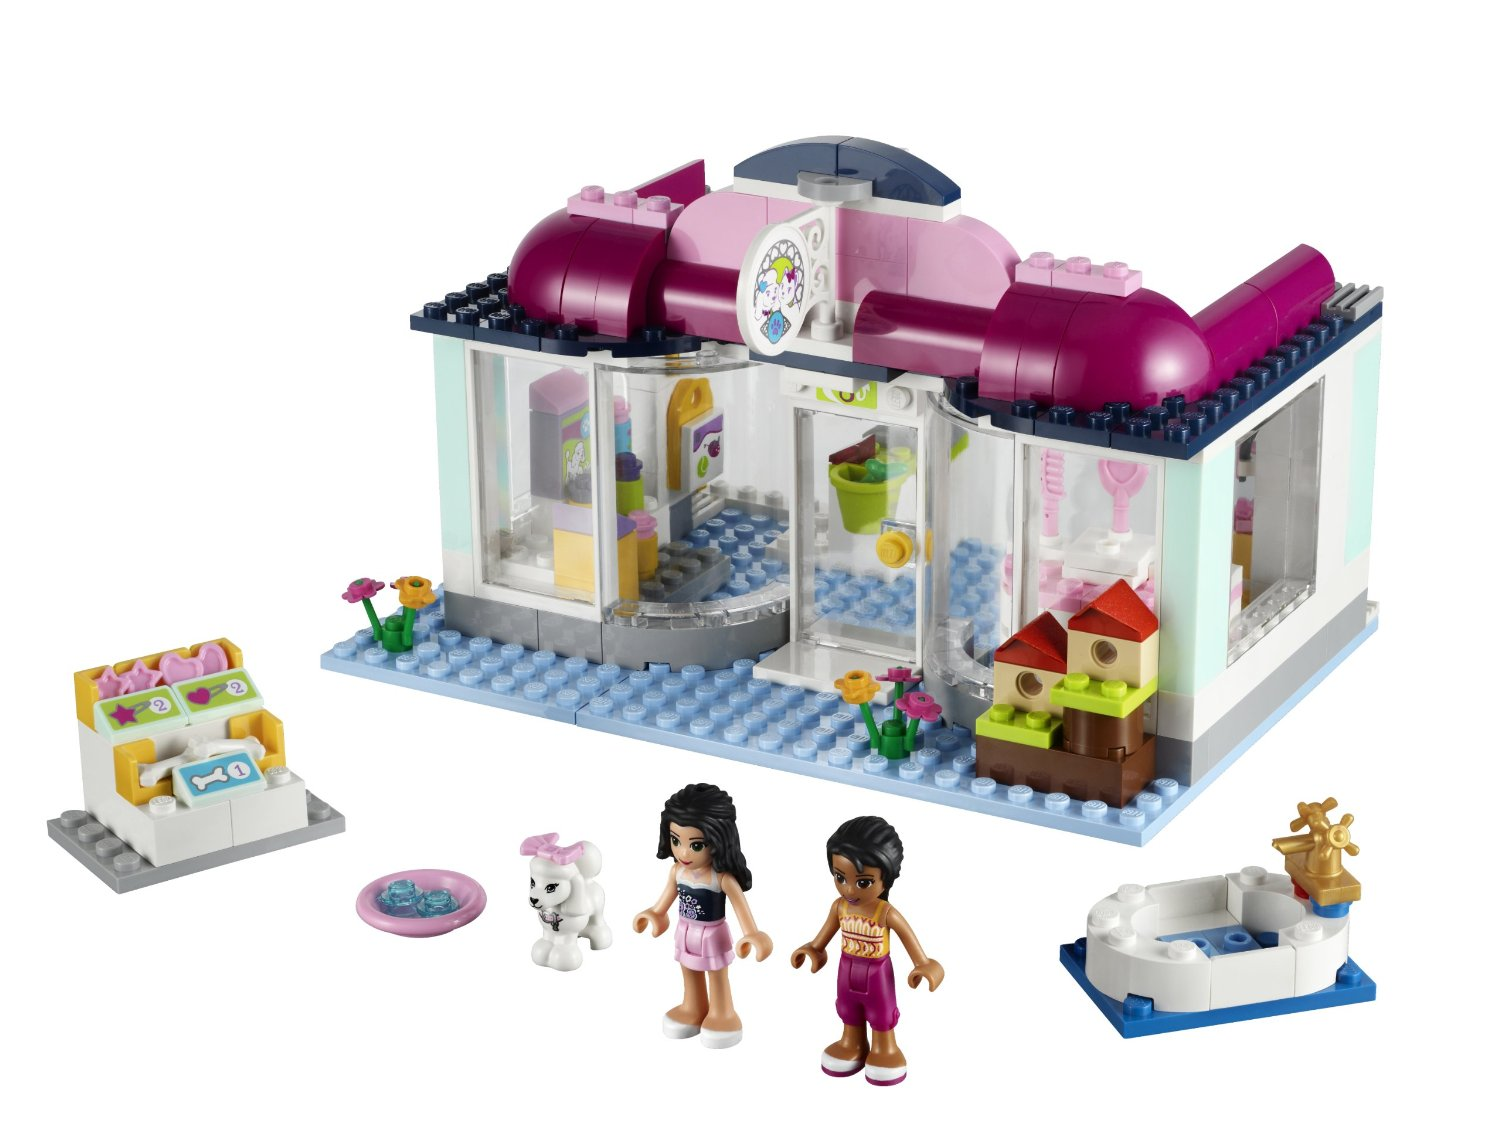 Image Result For How To Build Lego Friends Pet Shop